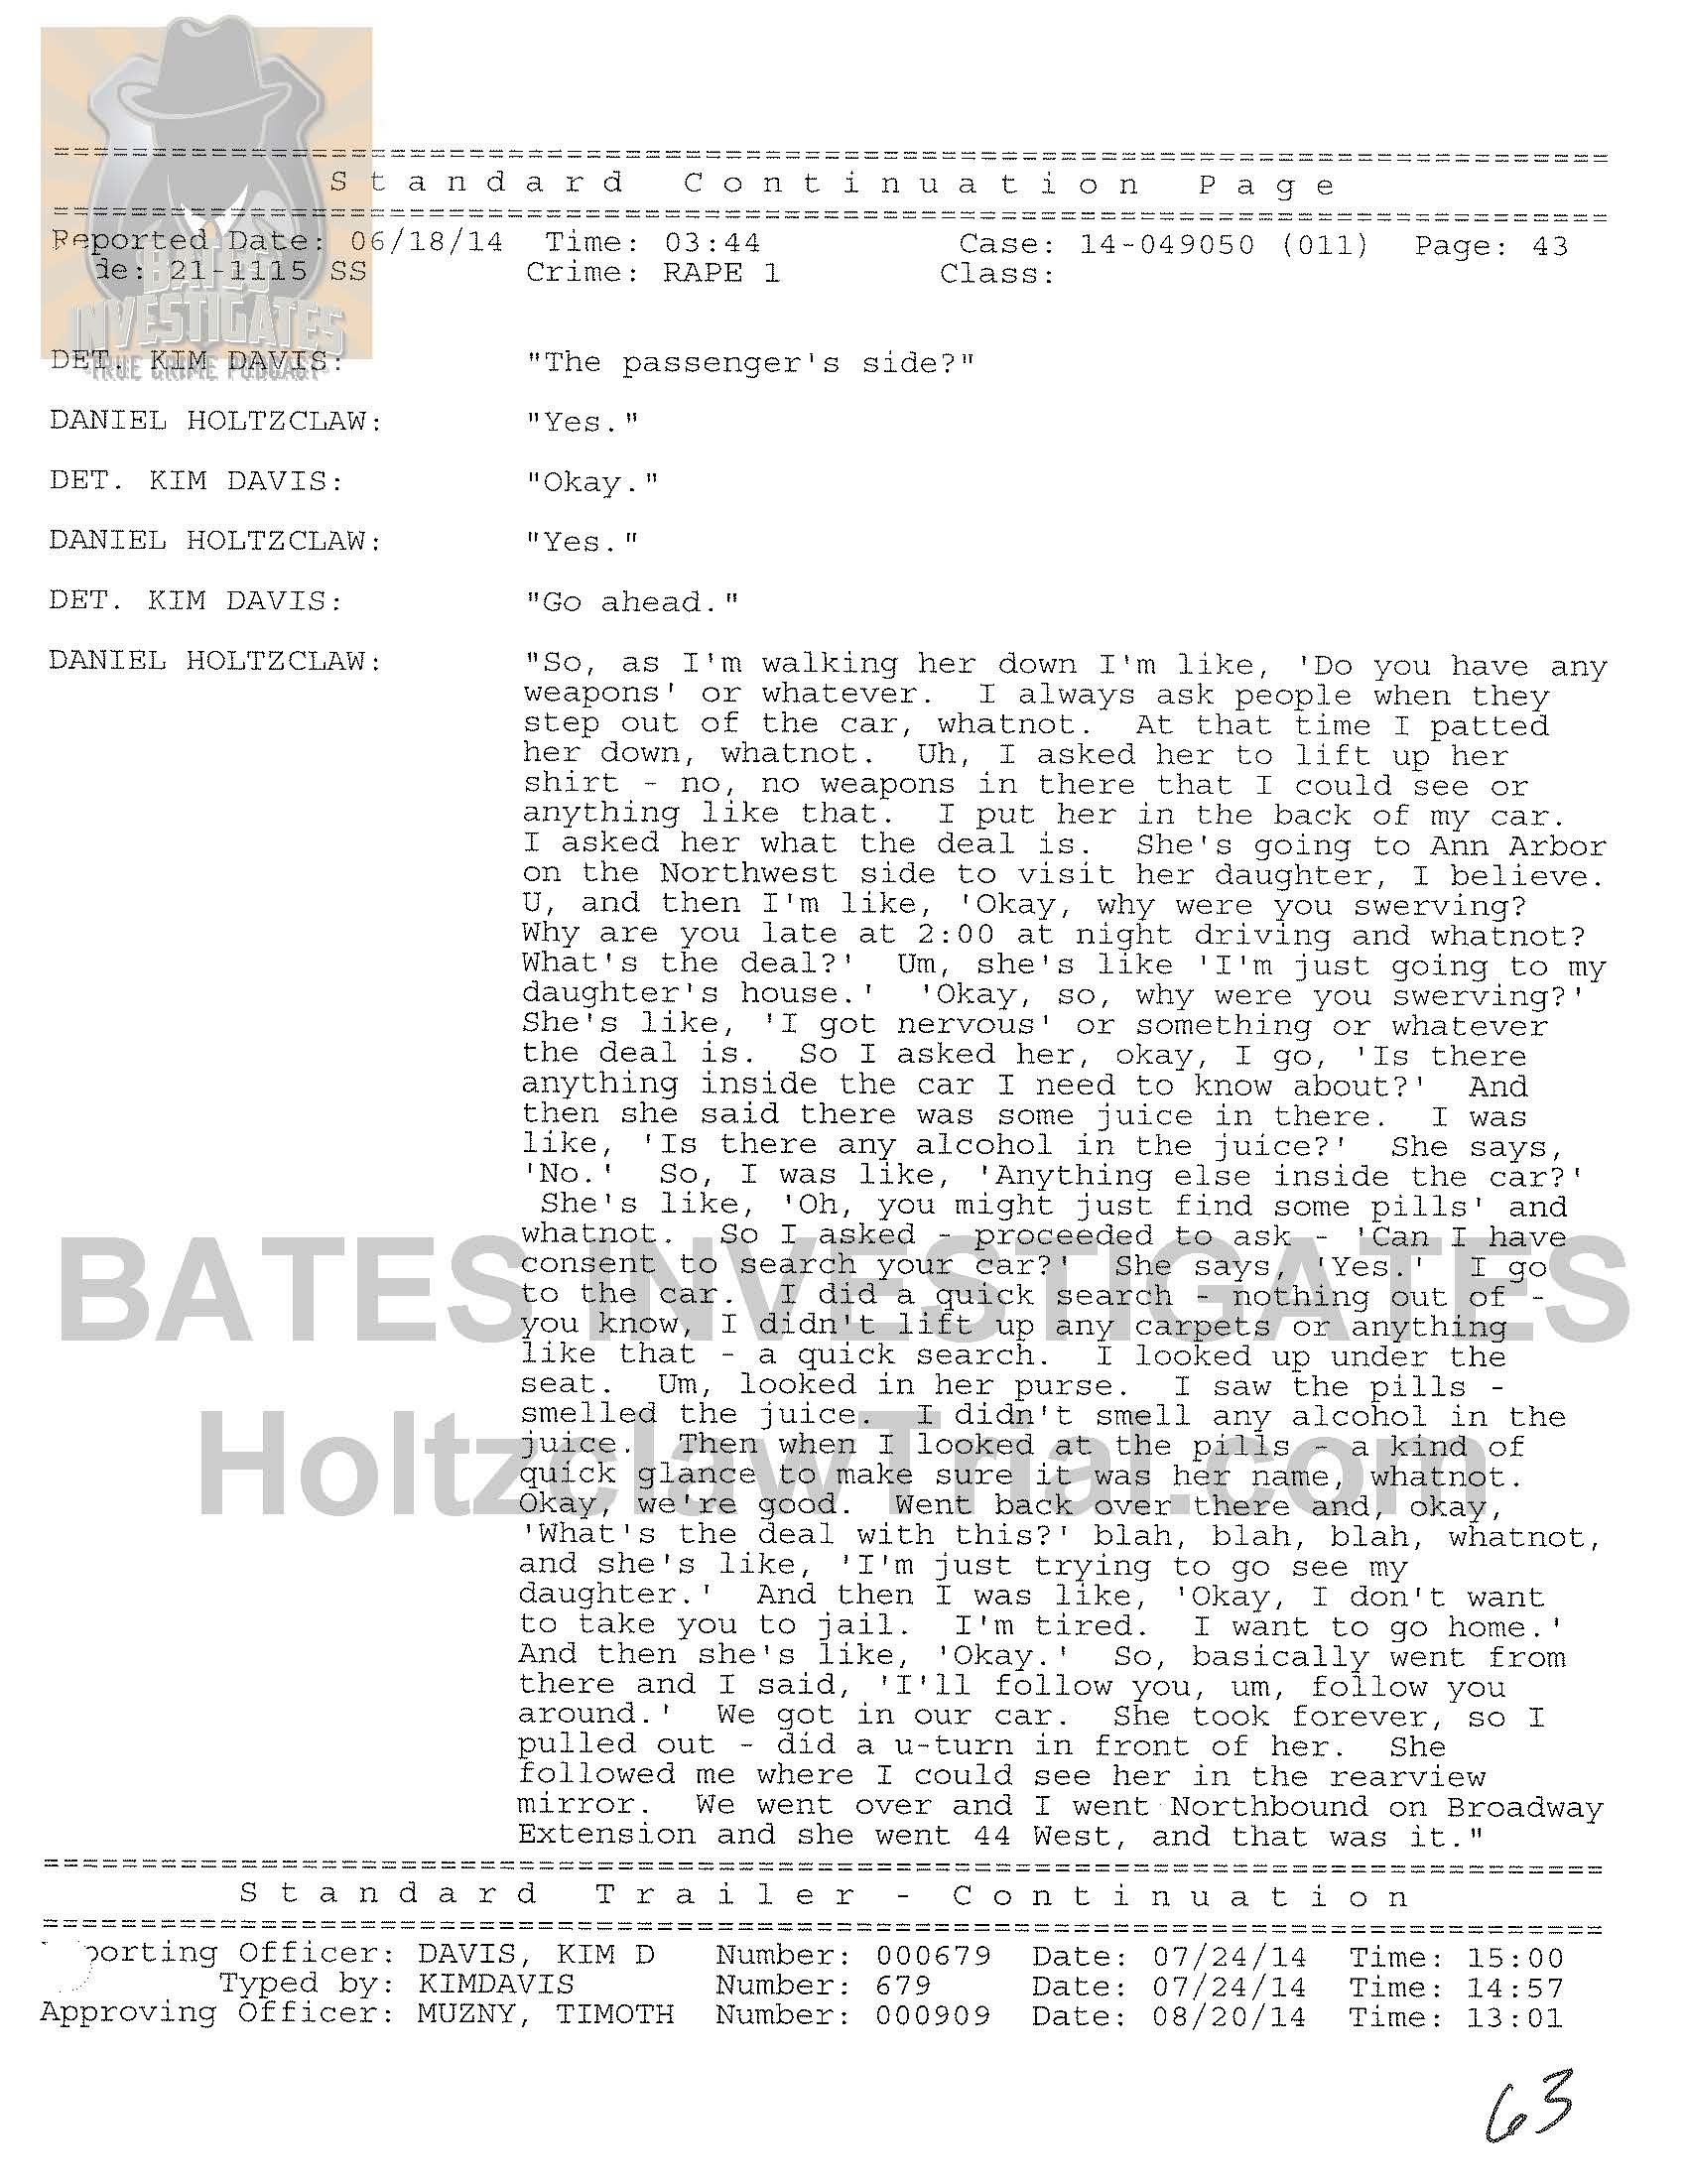 Holtzclaw Interrogation Transcript - Ep02 Redacted_Page_43.jpg